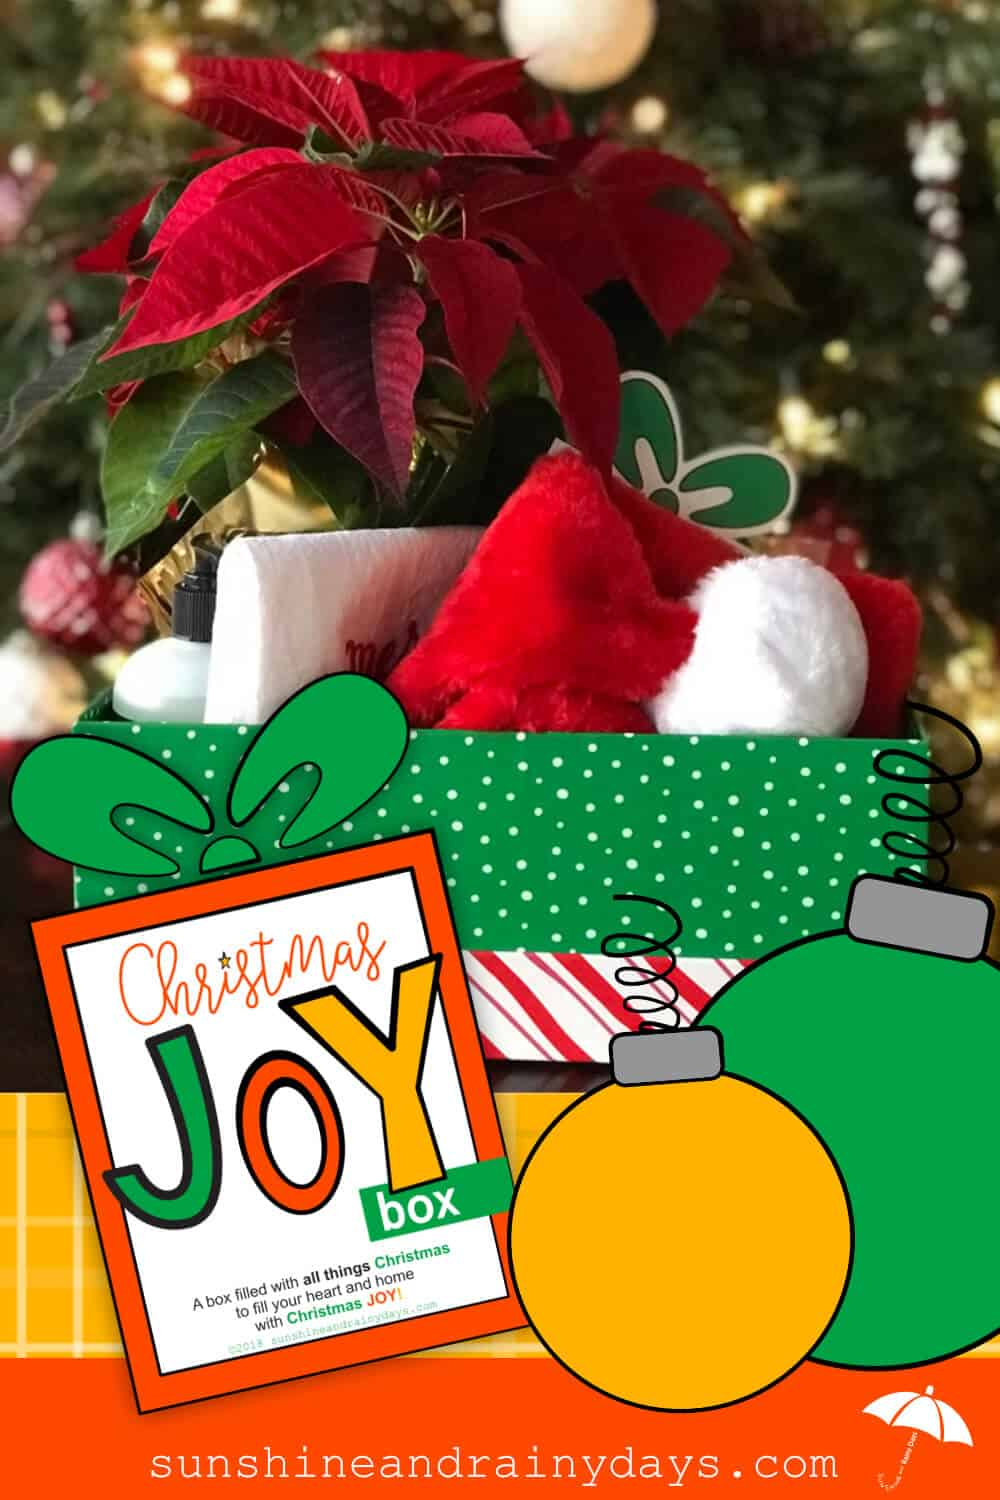 Christmas JOY Box - a box full of festive Christmas things